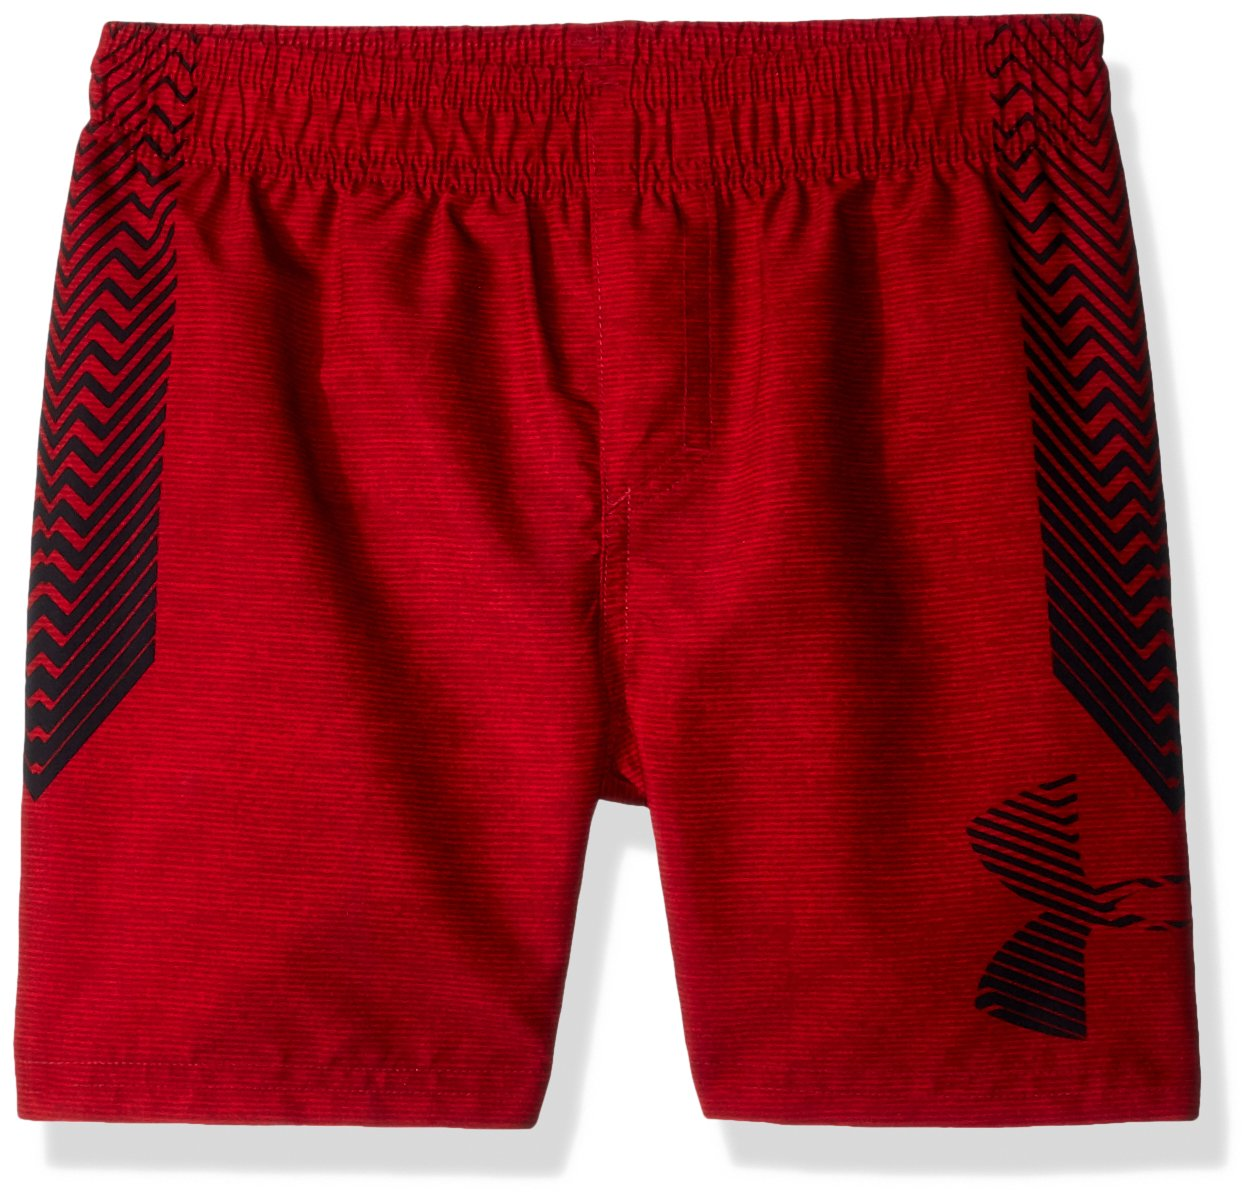 Under Armour Big Boys' Volley Swim Trunk, Americana Red, Small